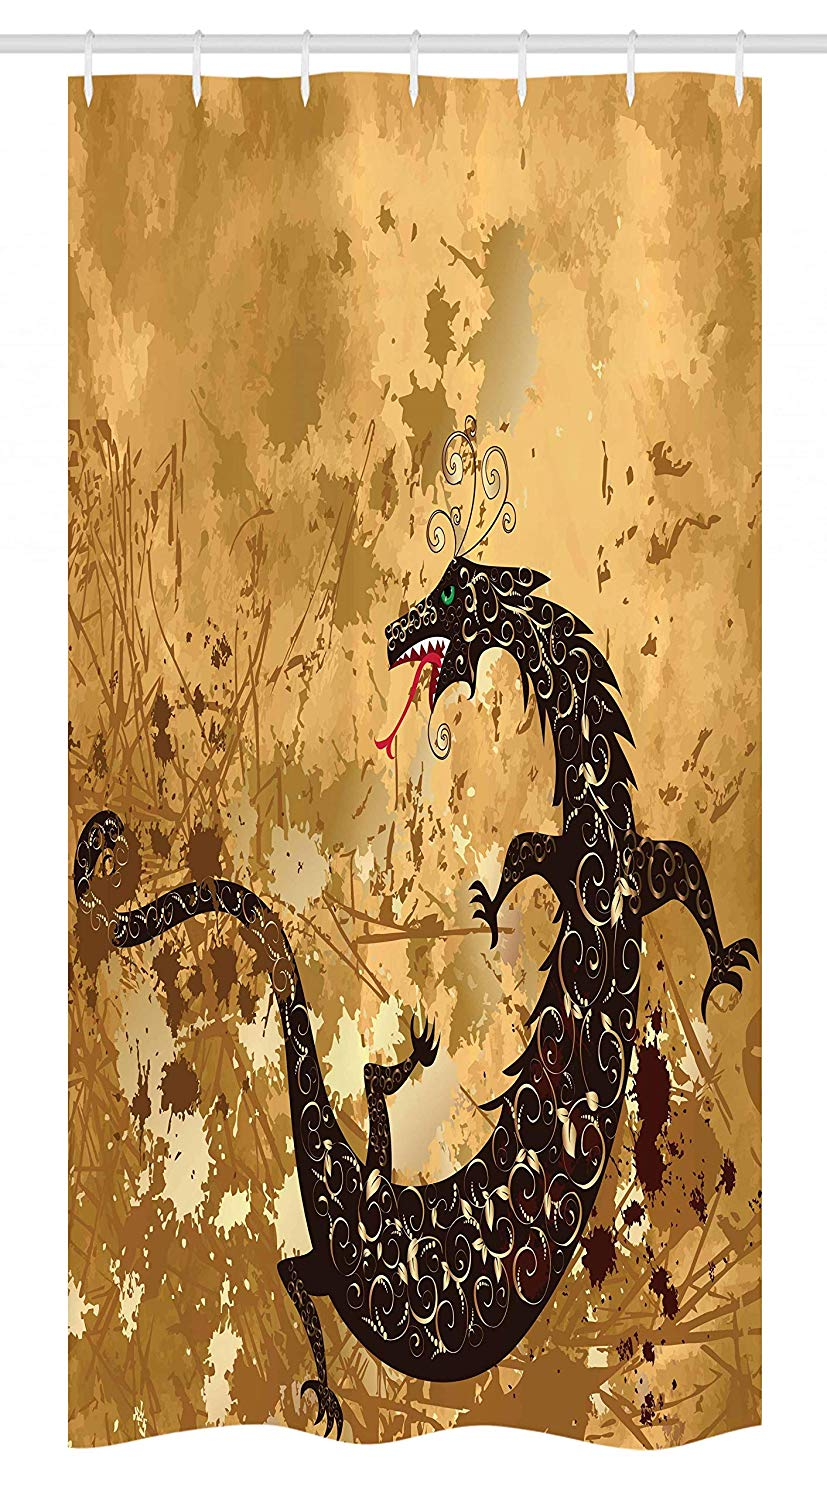 Ambesonne Dragon Stall Shower Curtain, Reptile Dragon Grunge Floral Ornate Ancient Asian Retro Image, Fabric Bathroom Decor Set with Hooks, 36 W x 72 L Inches, Sand Brown Light Caramel Brown